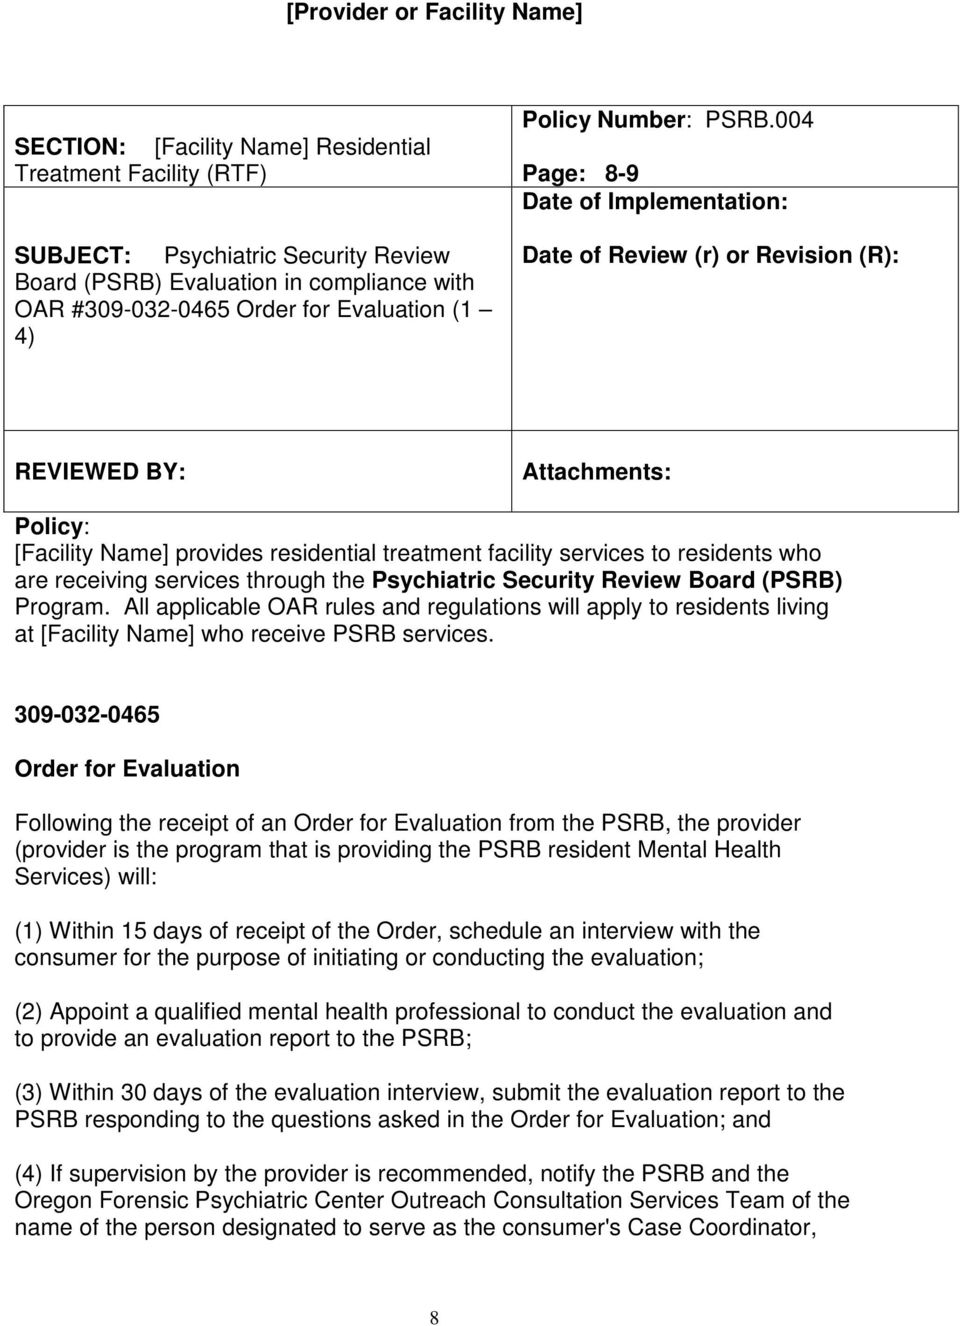 004 Page: 8-9 Date of Implementation: Date of Review (r) or Revision (R): REVIEWED BY: Attachments: Policy: [Facility Name] provides residential treatment facility services to residents who are